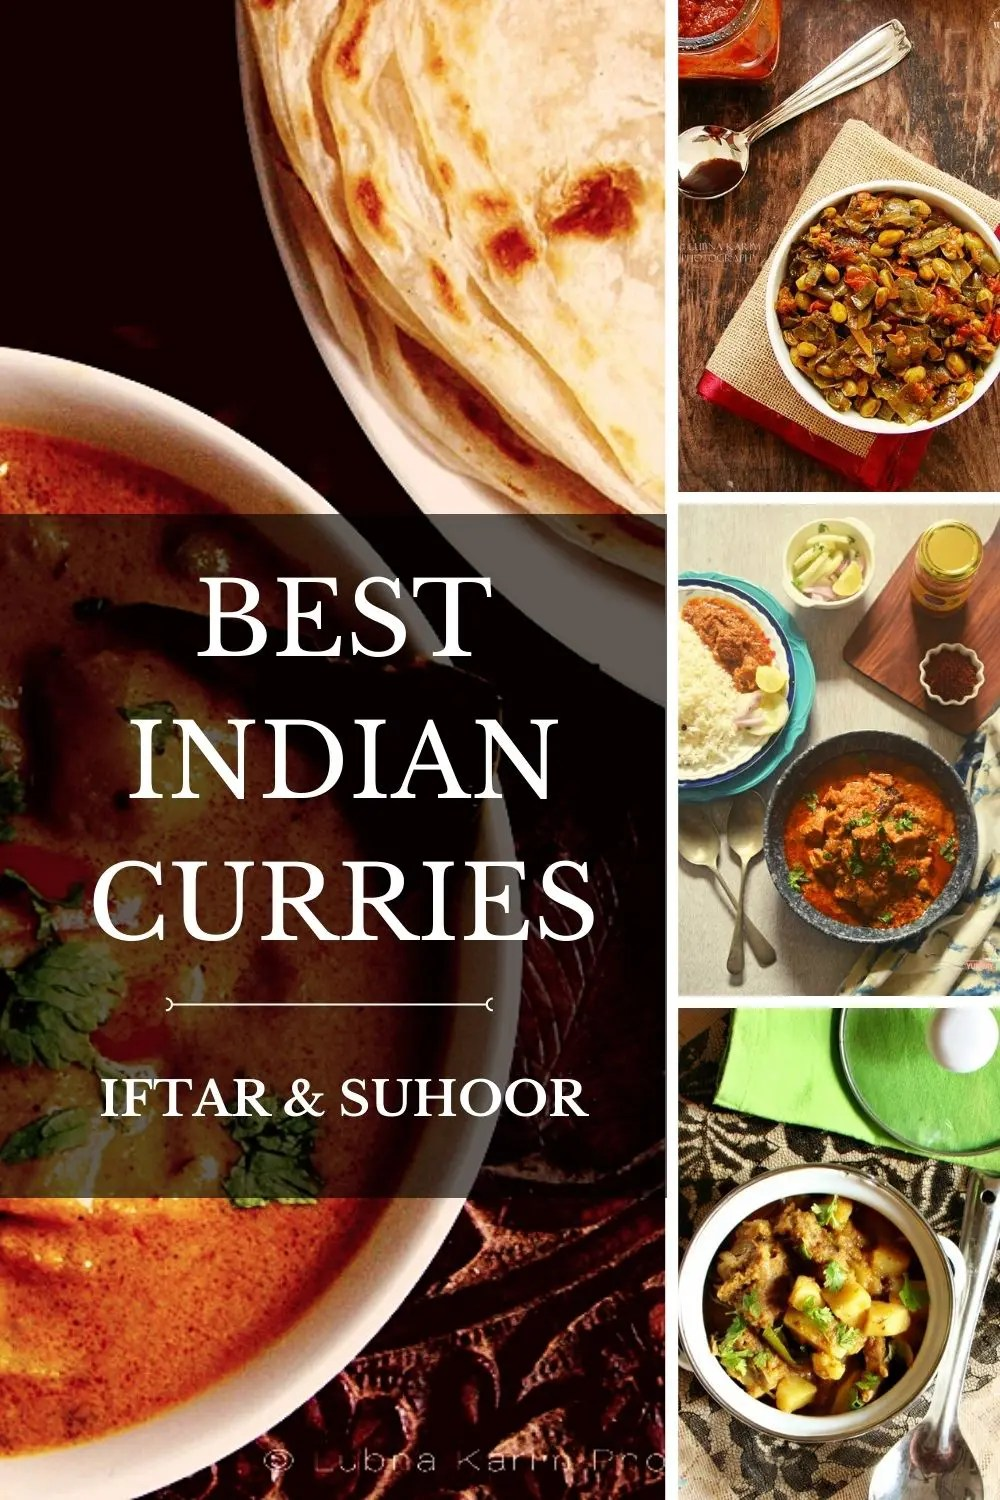 30 Best Indian Curries for Iftar and Suhoor